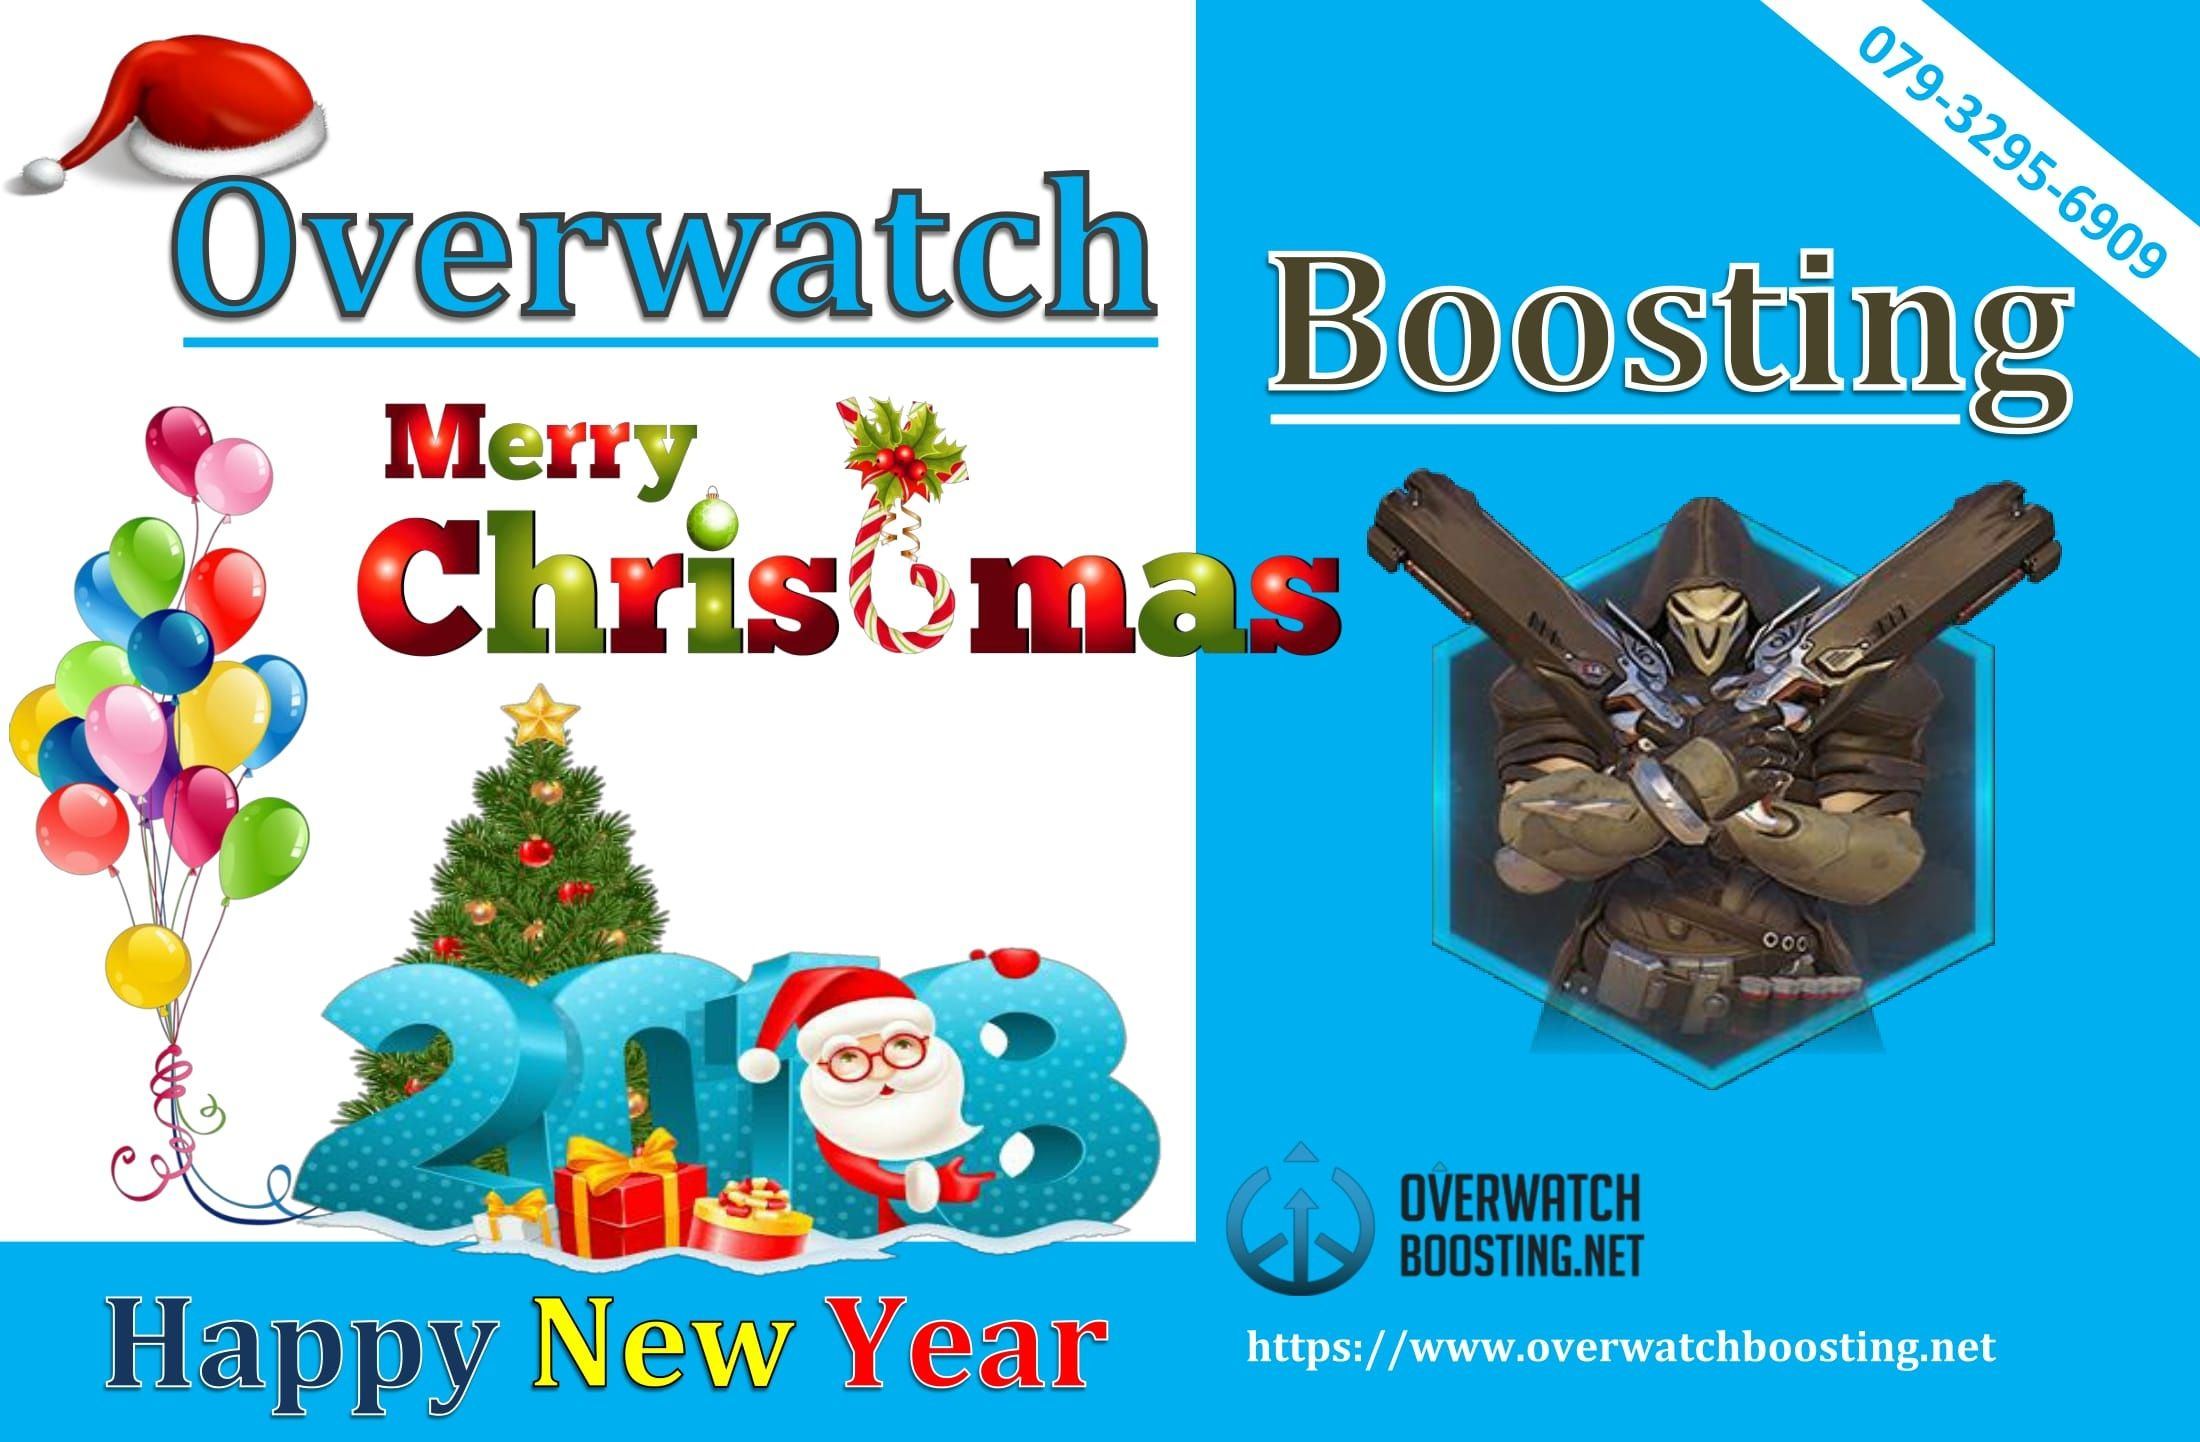 See more at Overwatch